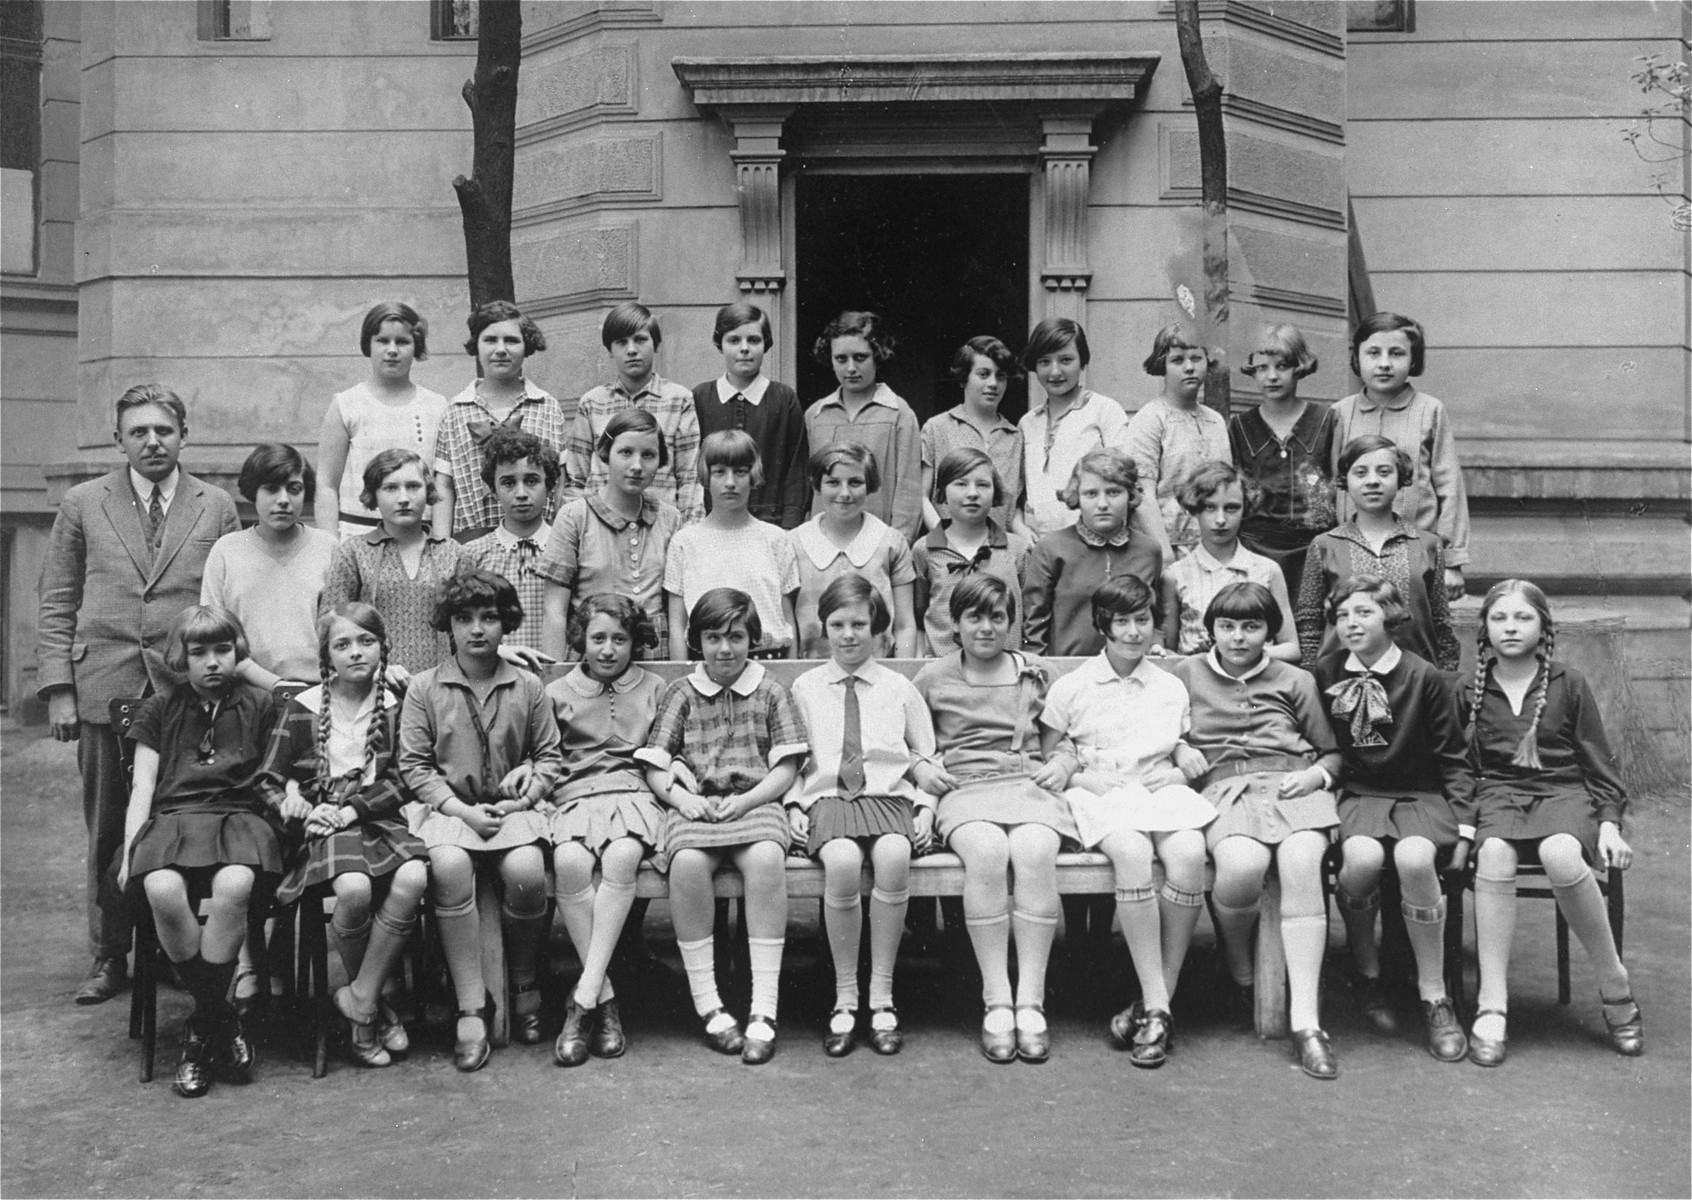 Group portrait of pupils at the Deutsches Madchen Reform Real Gymnasium Lyceum in Prague.  Among those pictured is Ruth Kohn (top row, fourth from the right).  The teacher is Professor Wyck.